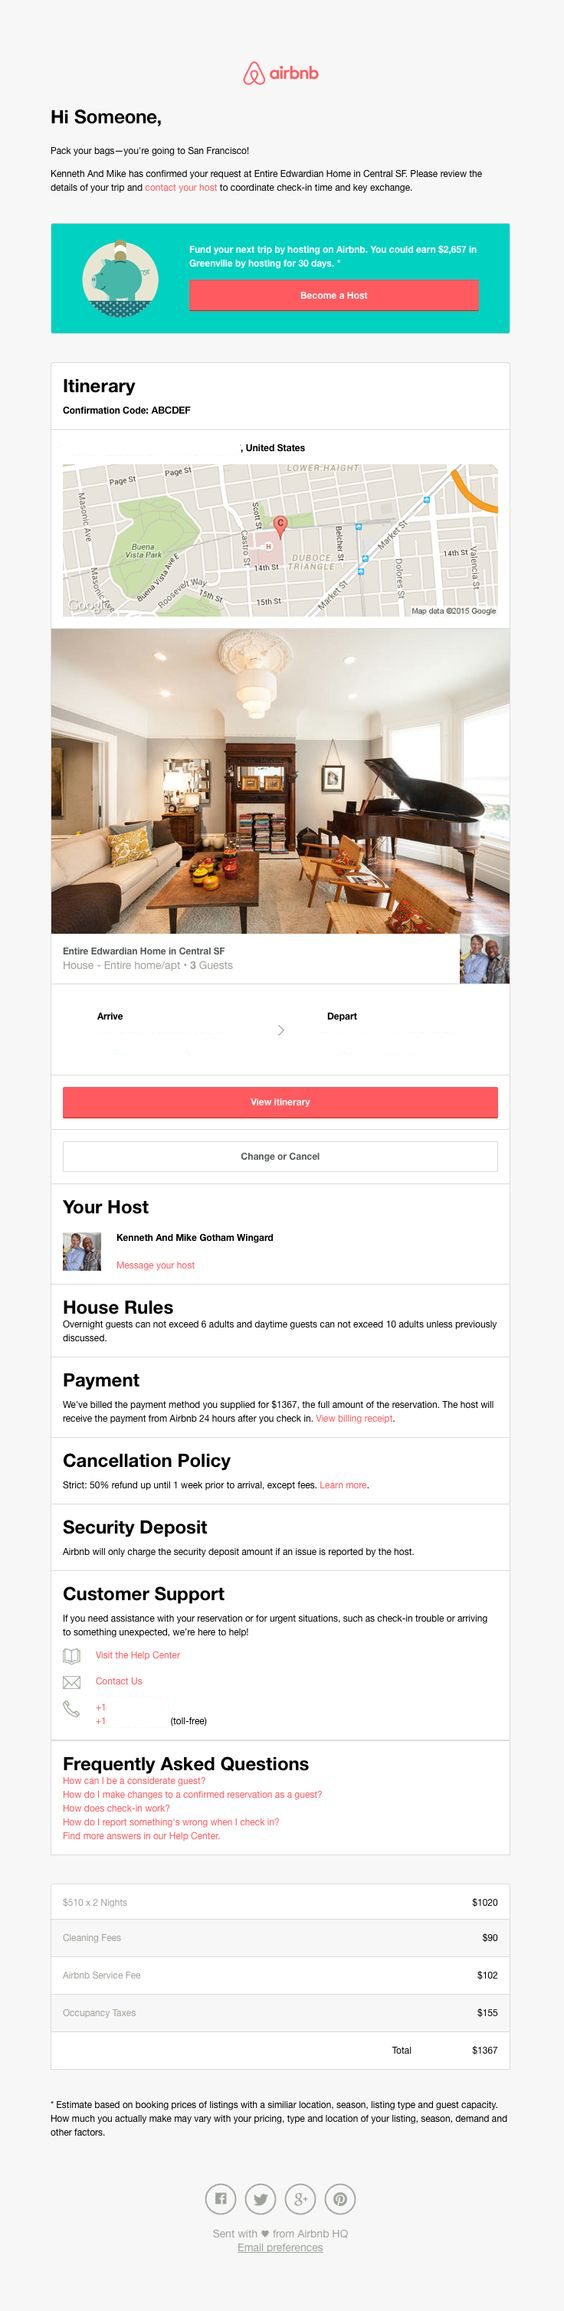 airbnb reservation transactional email design example